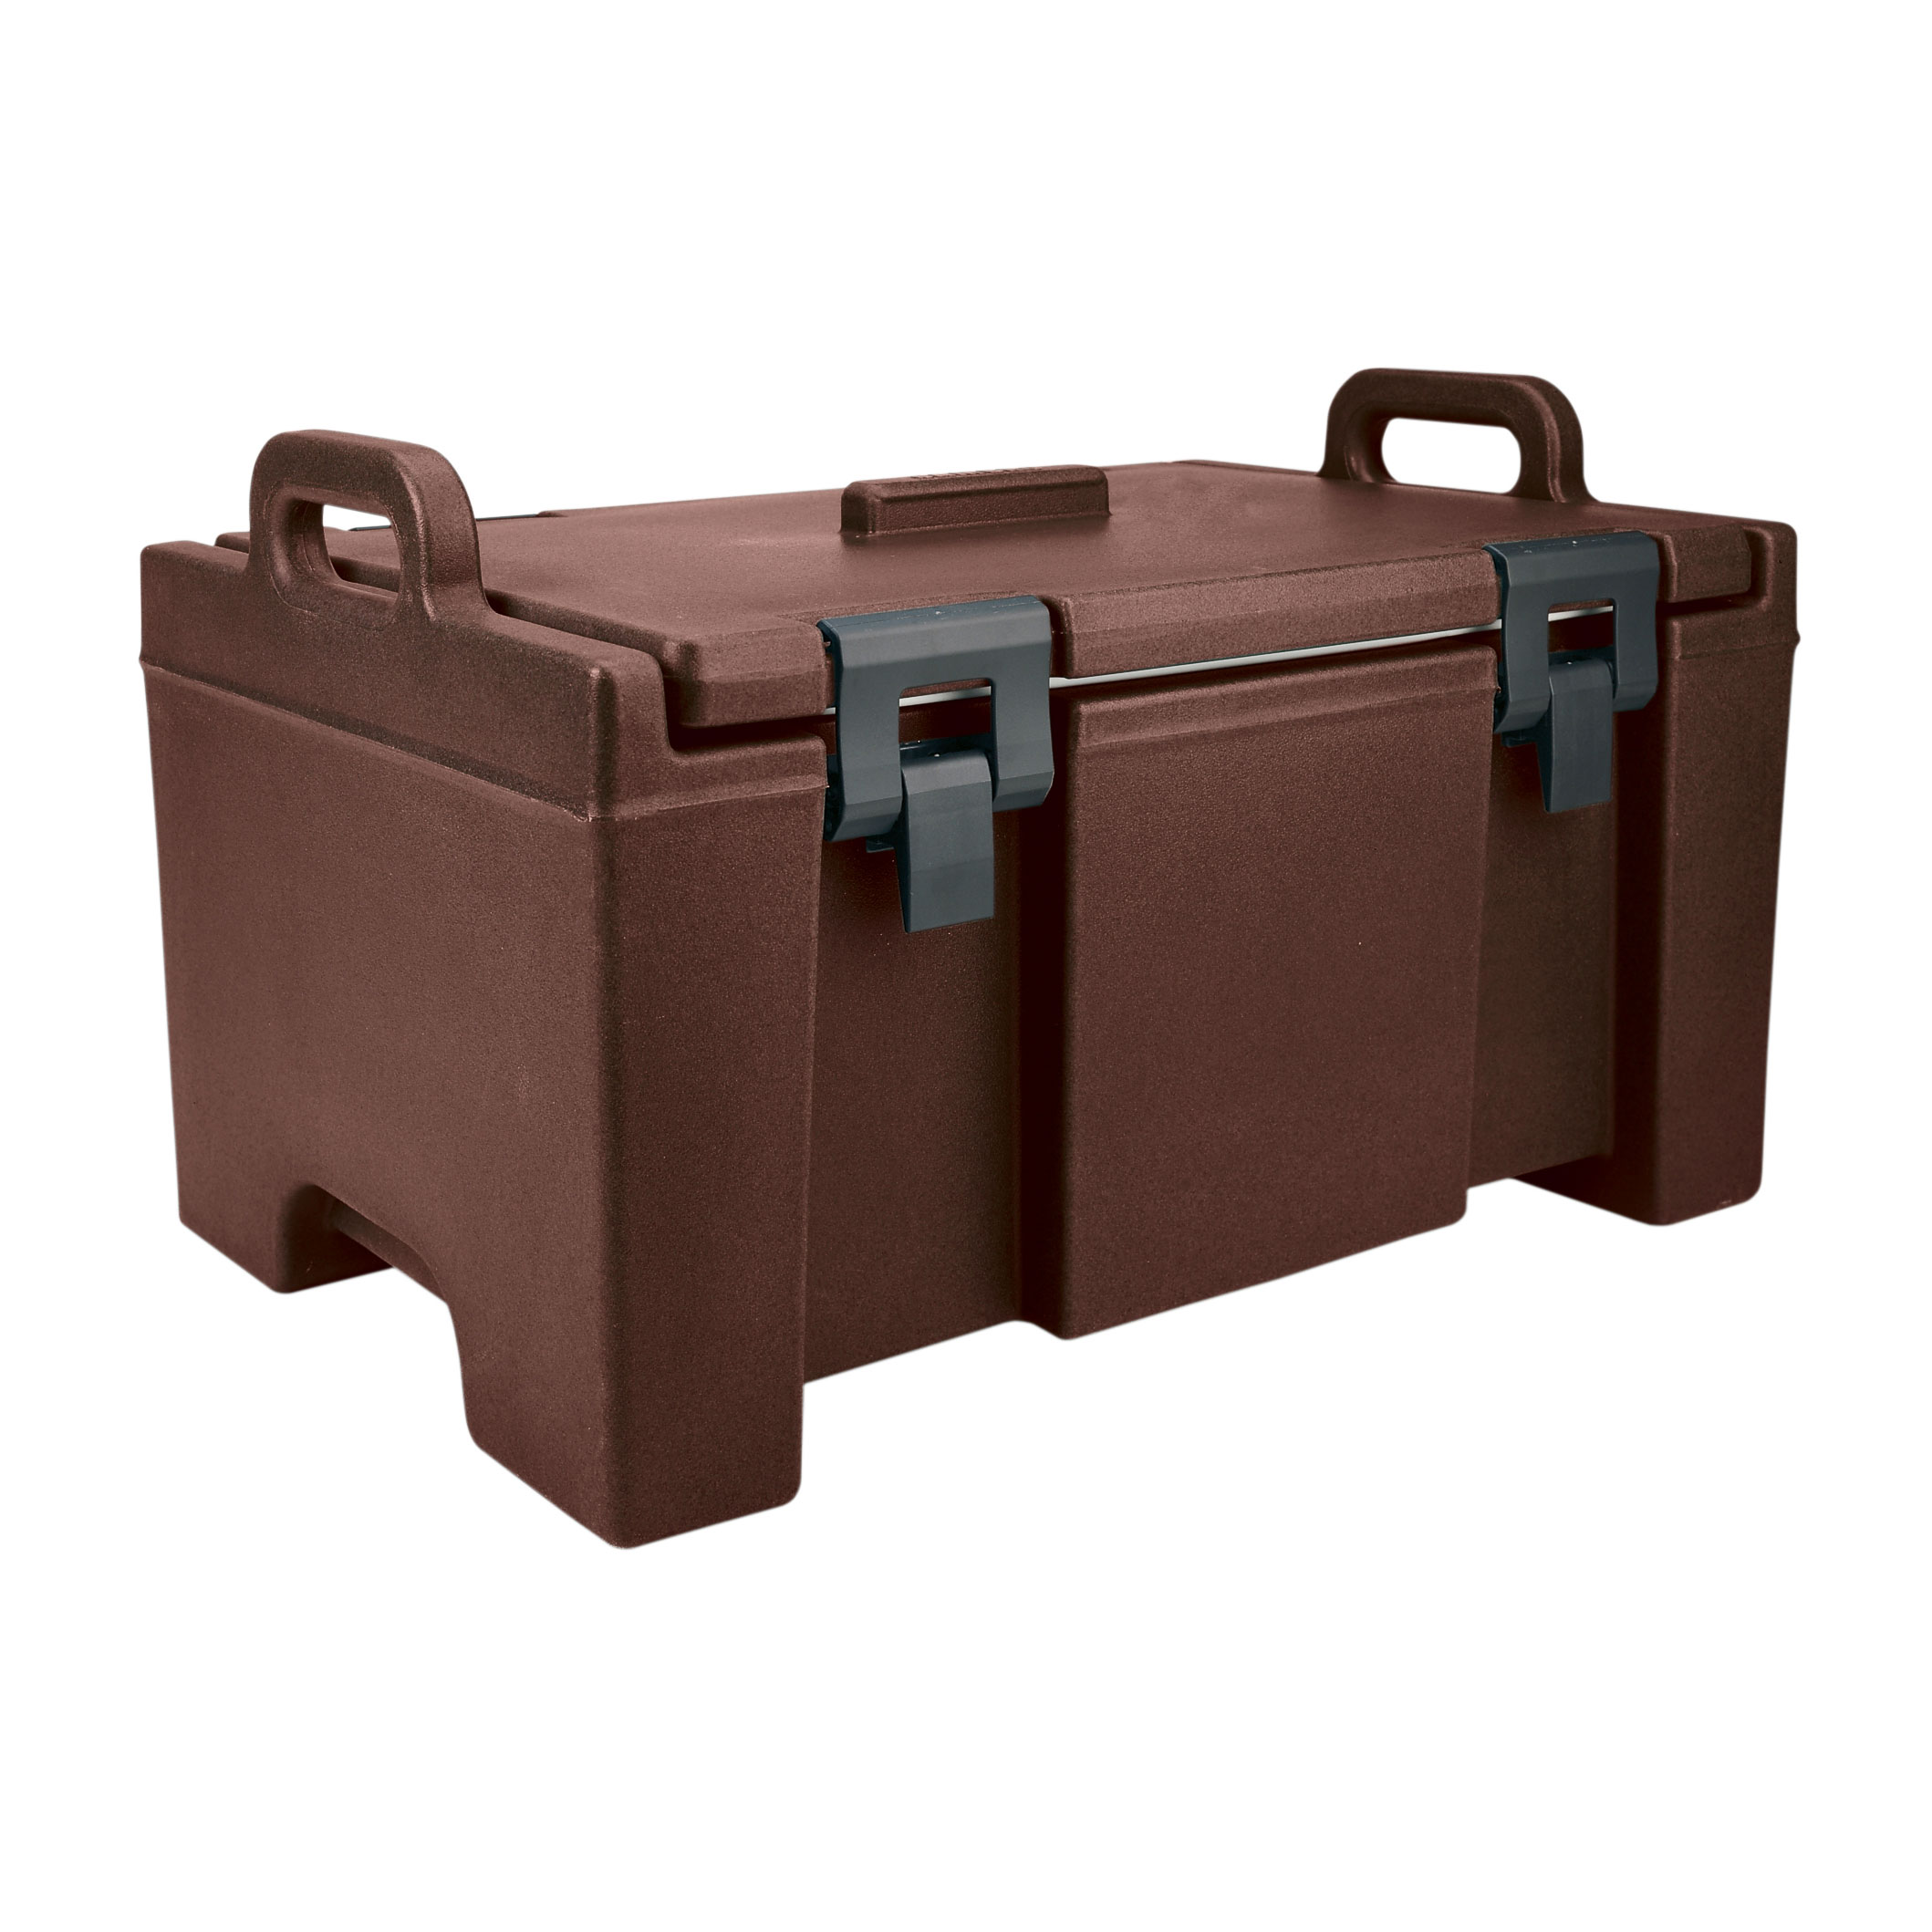 Cambro UPC100131 food carrier, insulated plastic